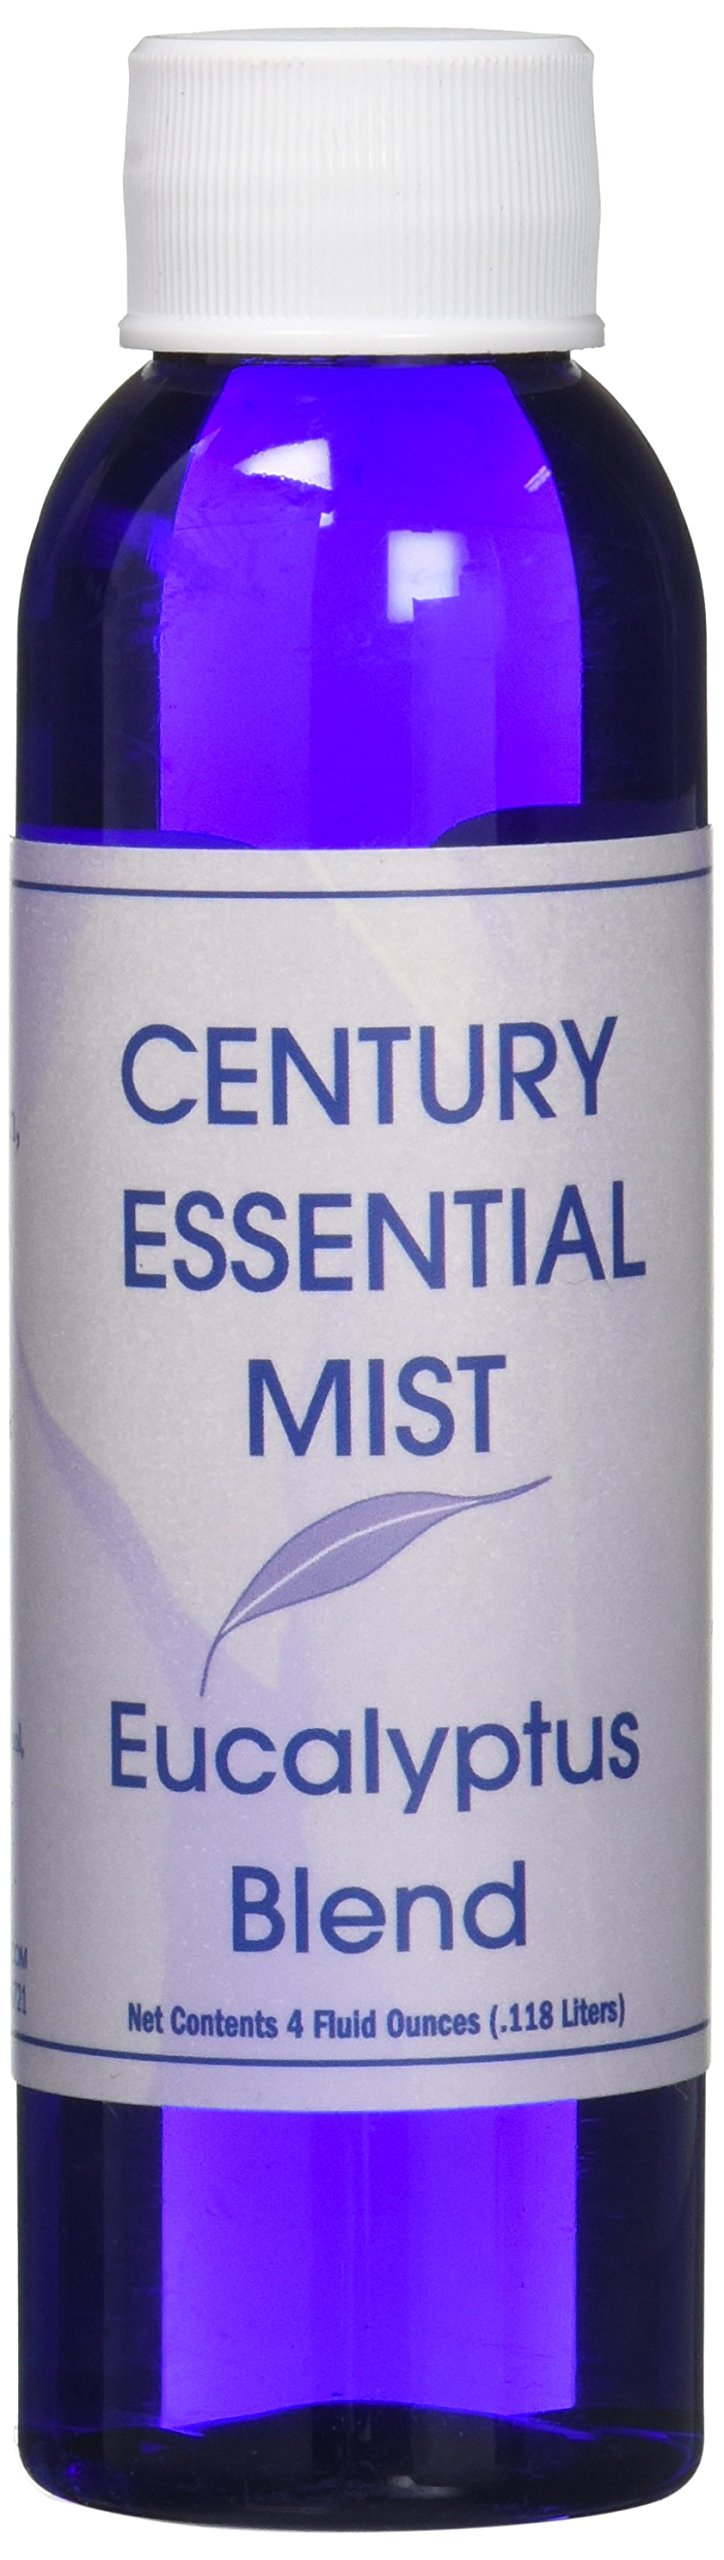 SHOWERDOORDIRECT.COM Century Essential Eucalyptus Blend Mist Spray, 4-Ounce